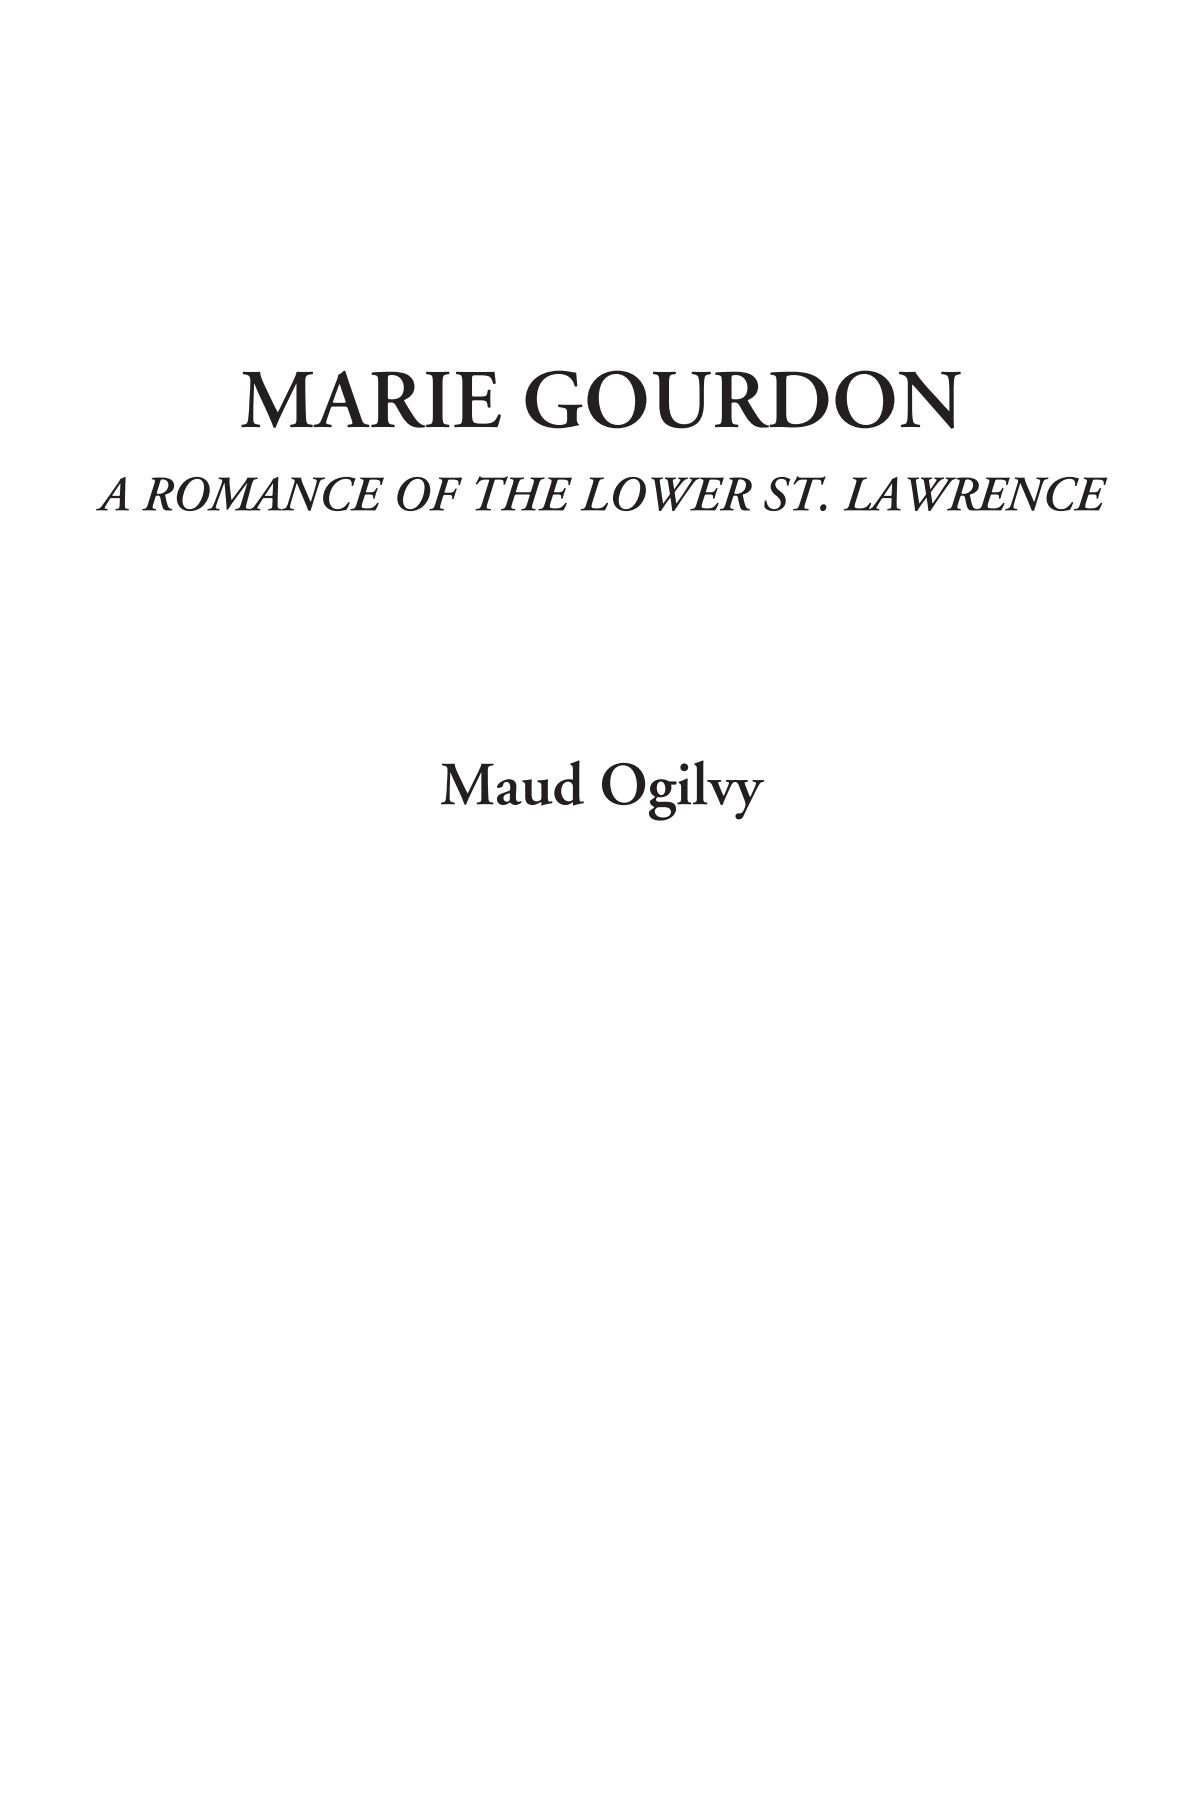 Download Marie Gourdon (A Romance of the Lower St. Lawrence) PDF